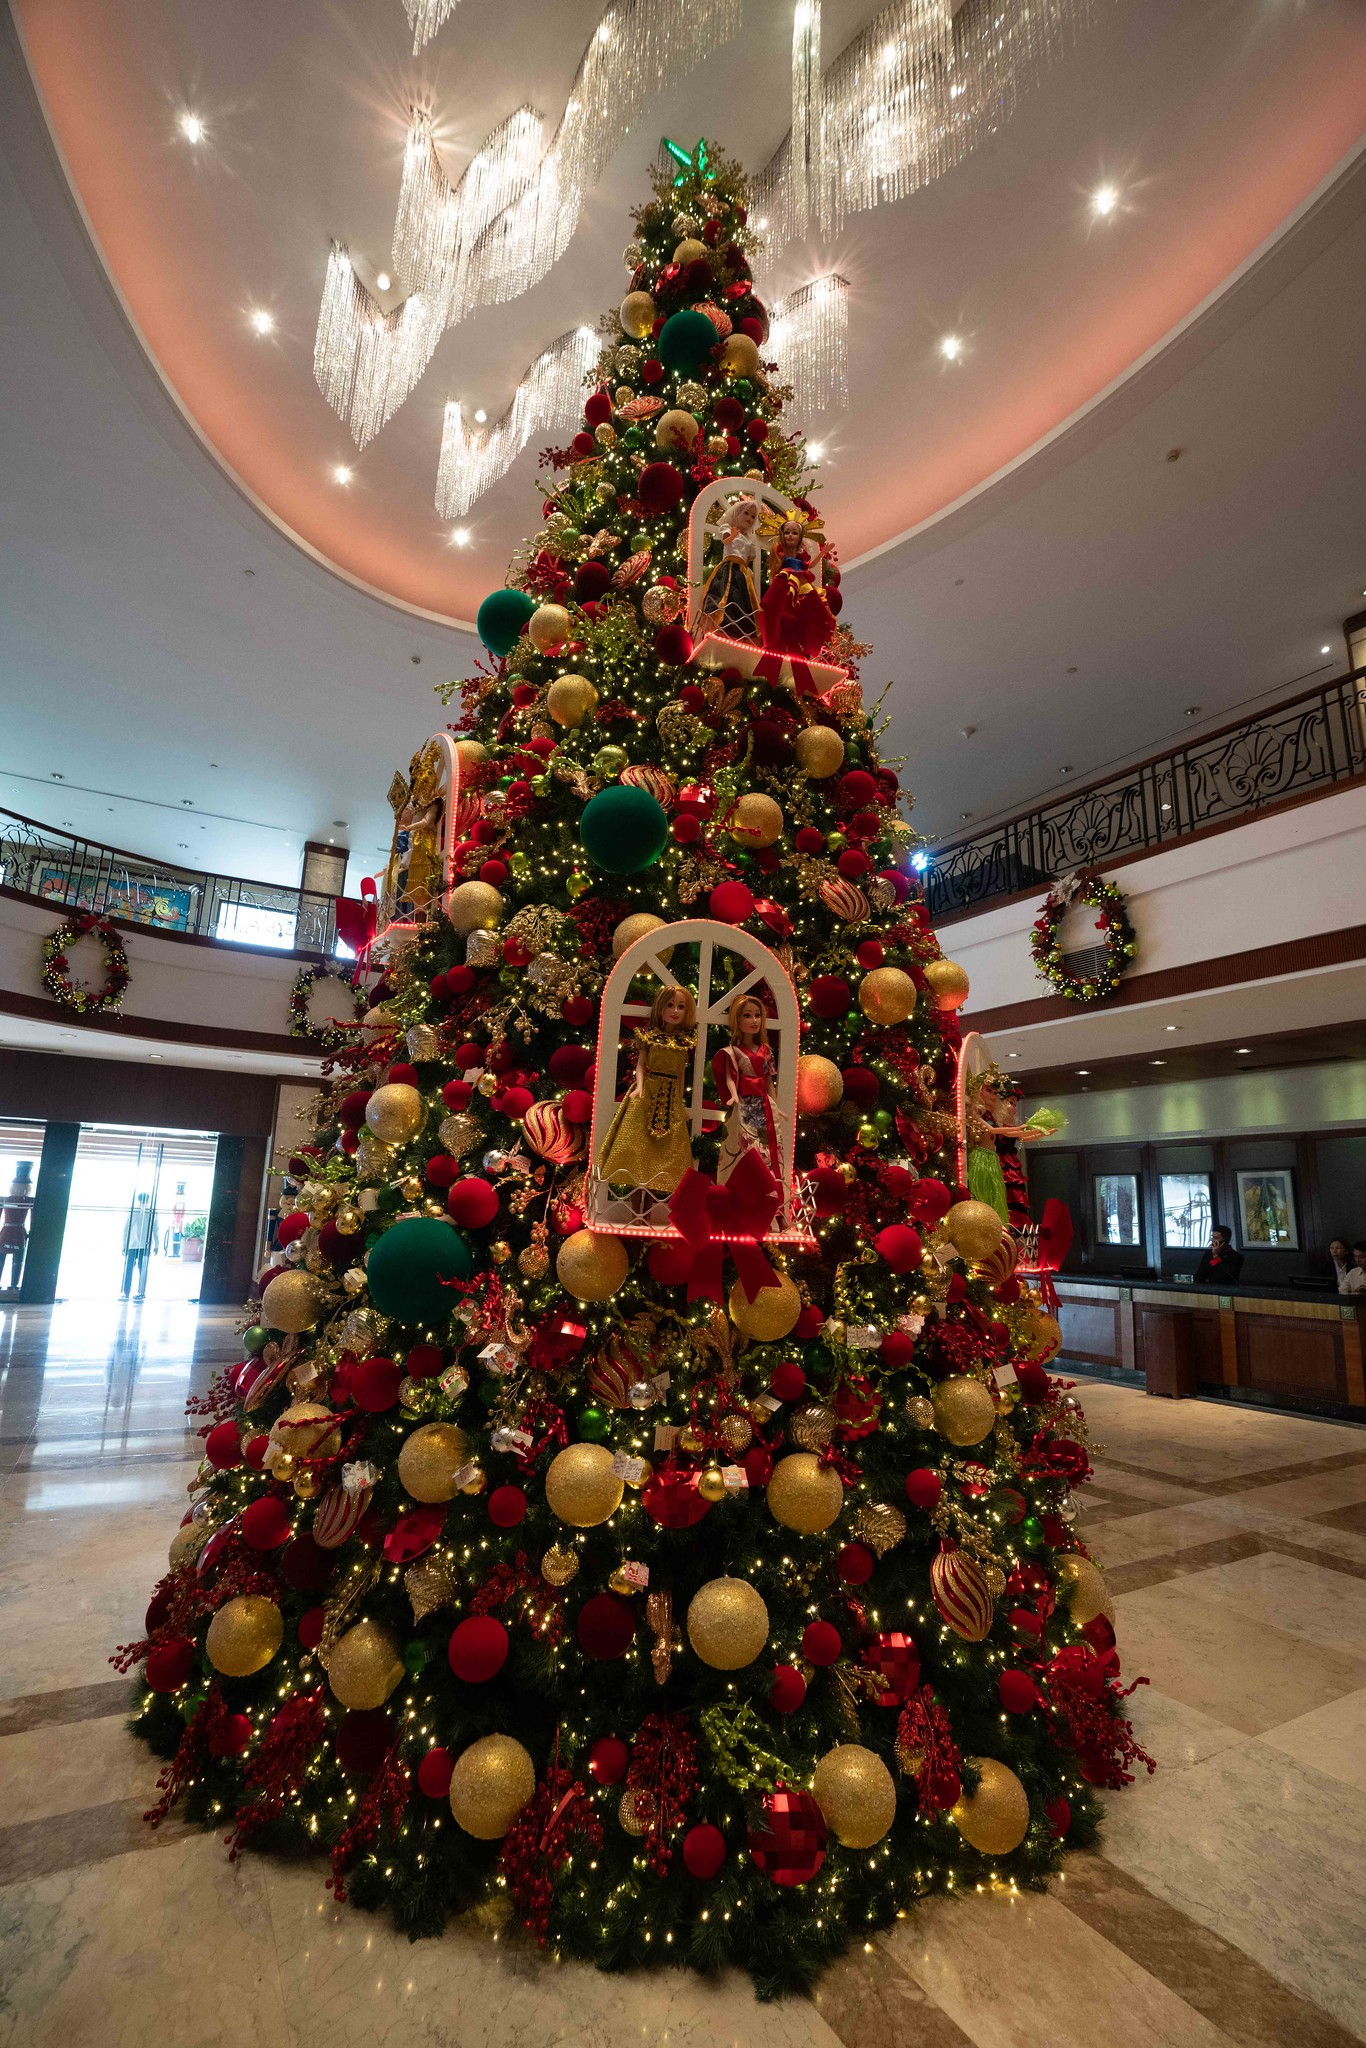 Marco Polo Plaza's Tree of Hope